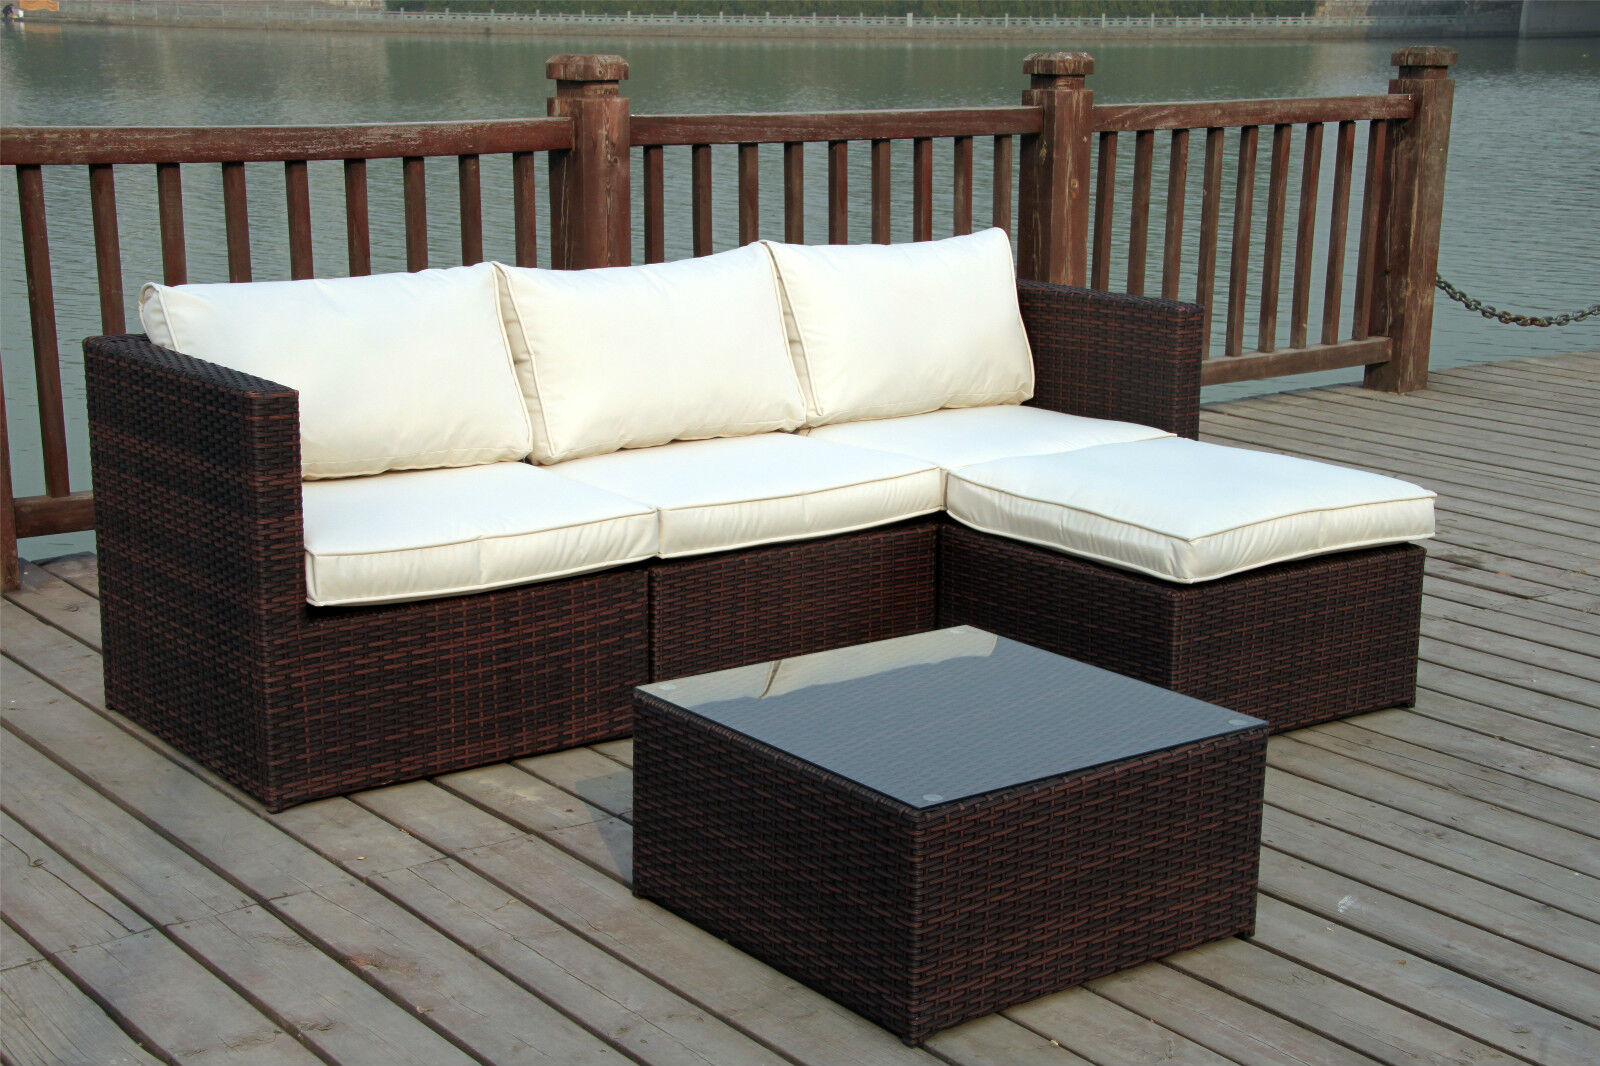 new rattan wicker conservatory outdoor garden furniture set corner sofa table ebay. Black Bedroom Furniture Sets. Home Design Ideas